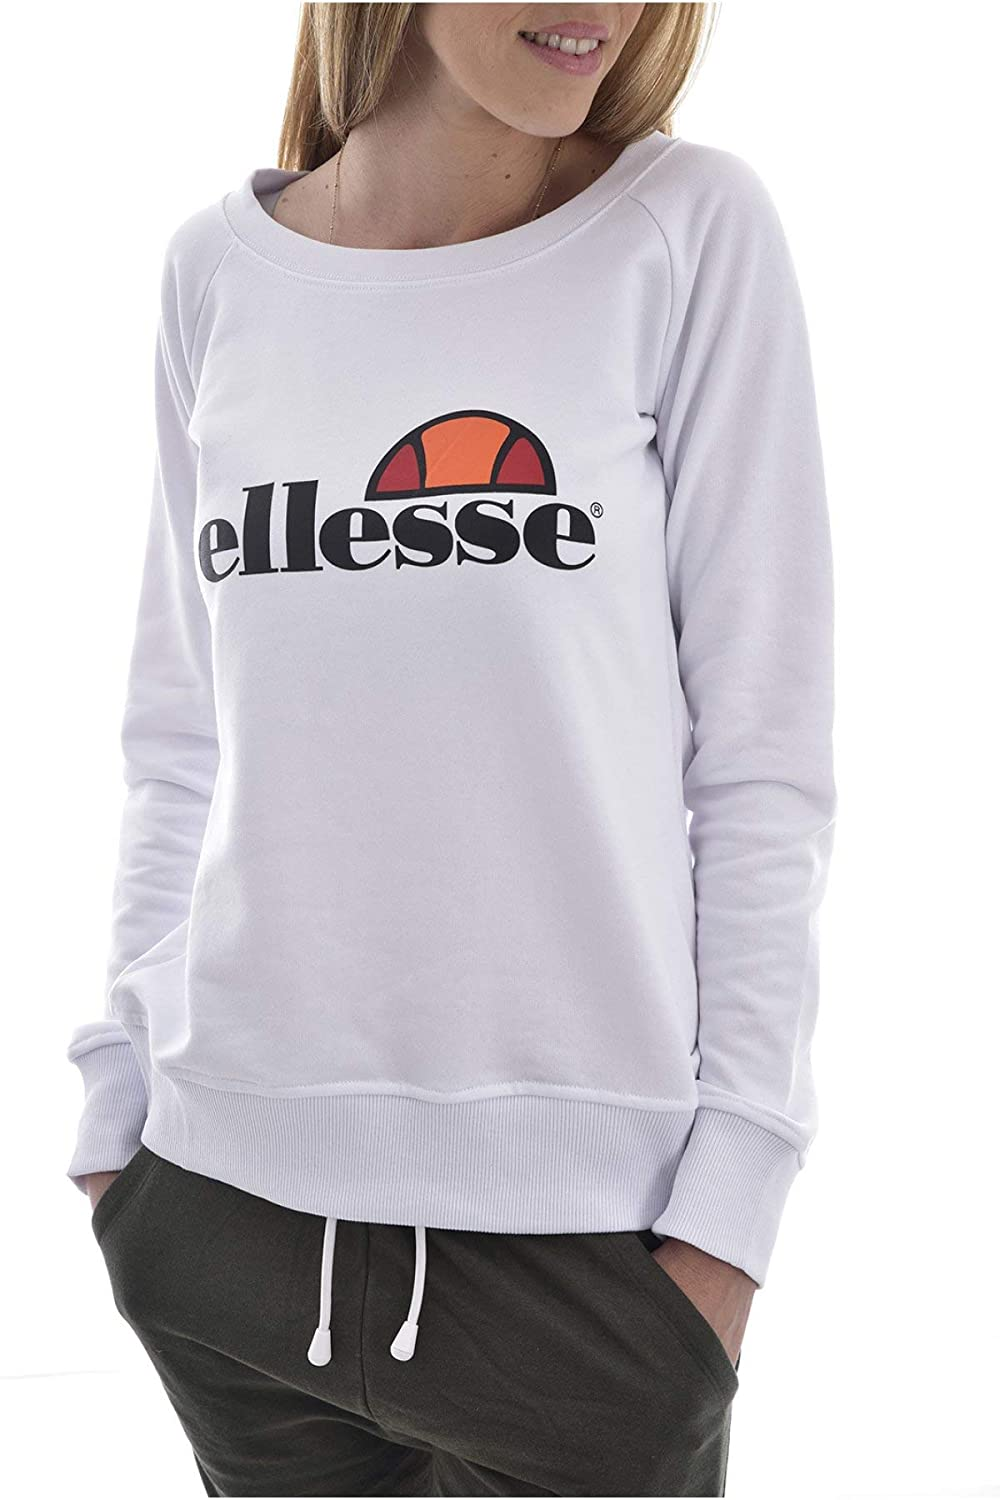 Ellesse Eh F Sws Col Rond Blanc, Sudadera